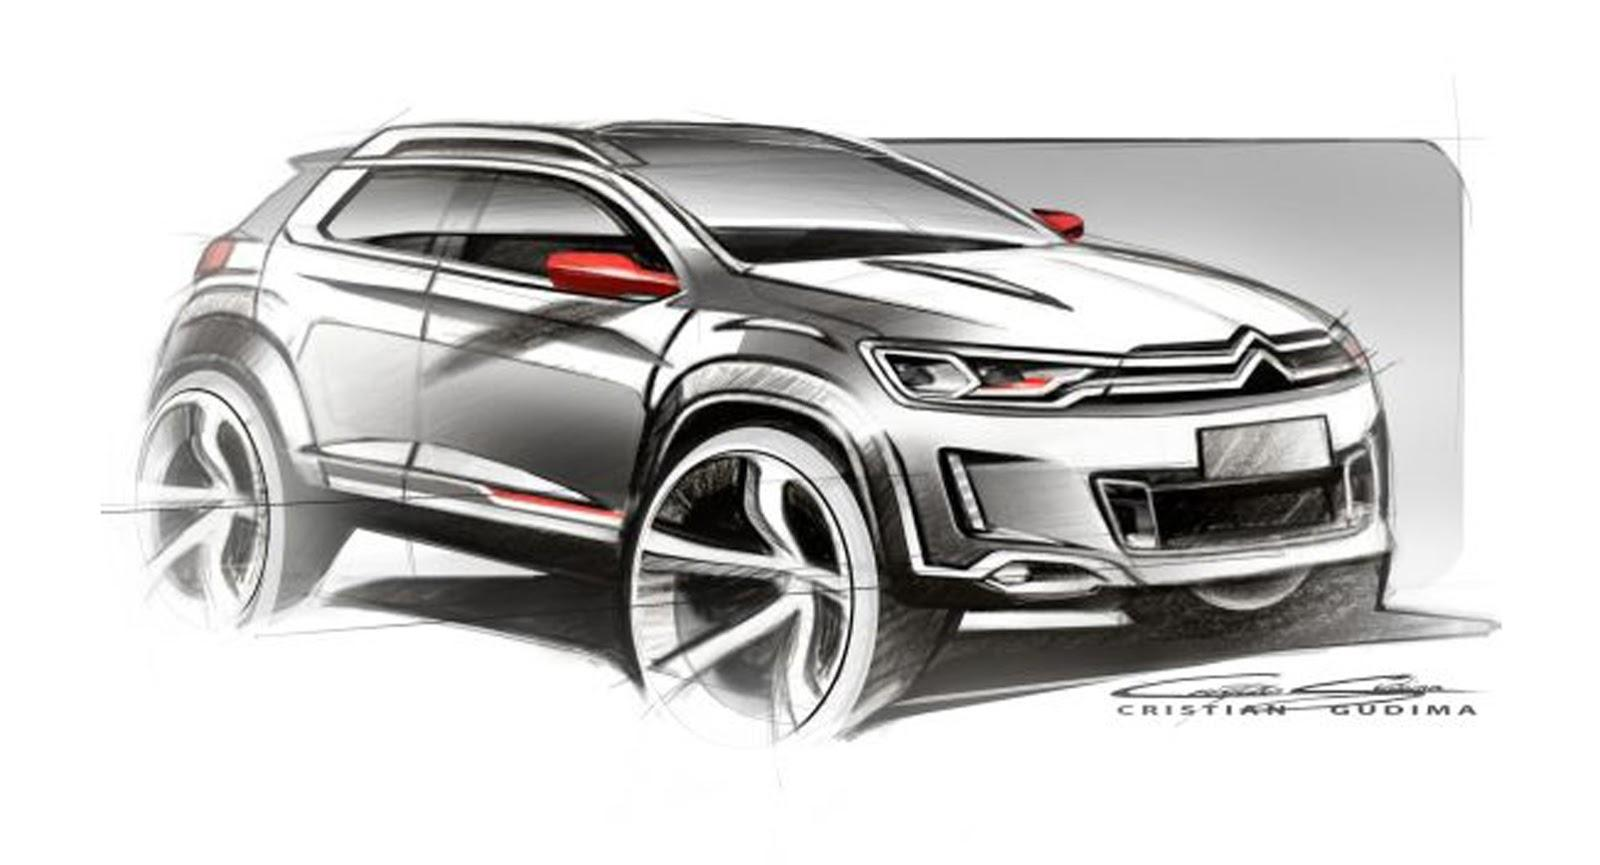 Compact Suv Australia >> Citröen Cars - News: Crossover concept sketch leaked online